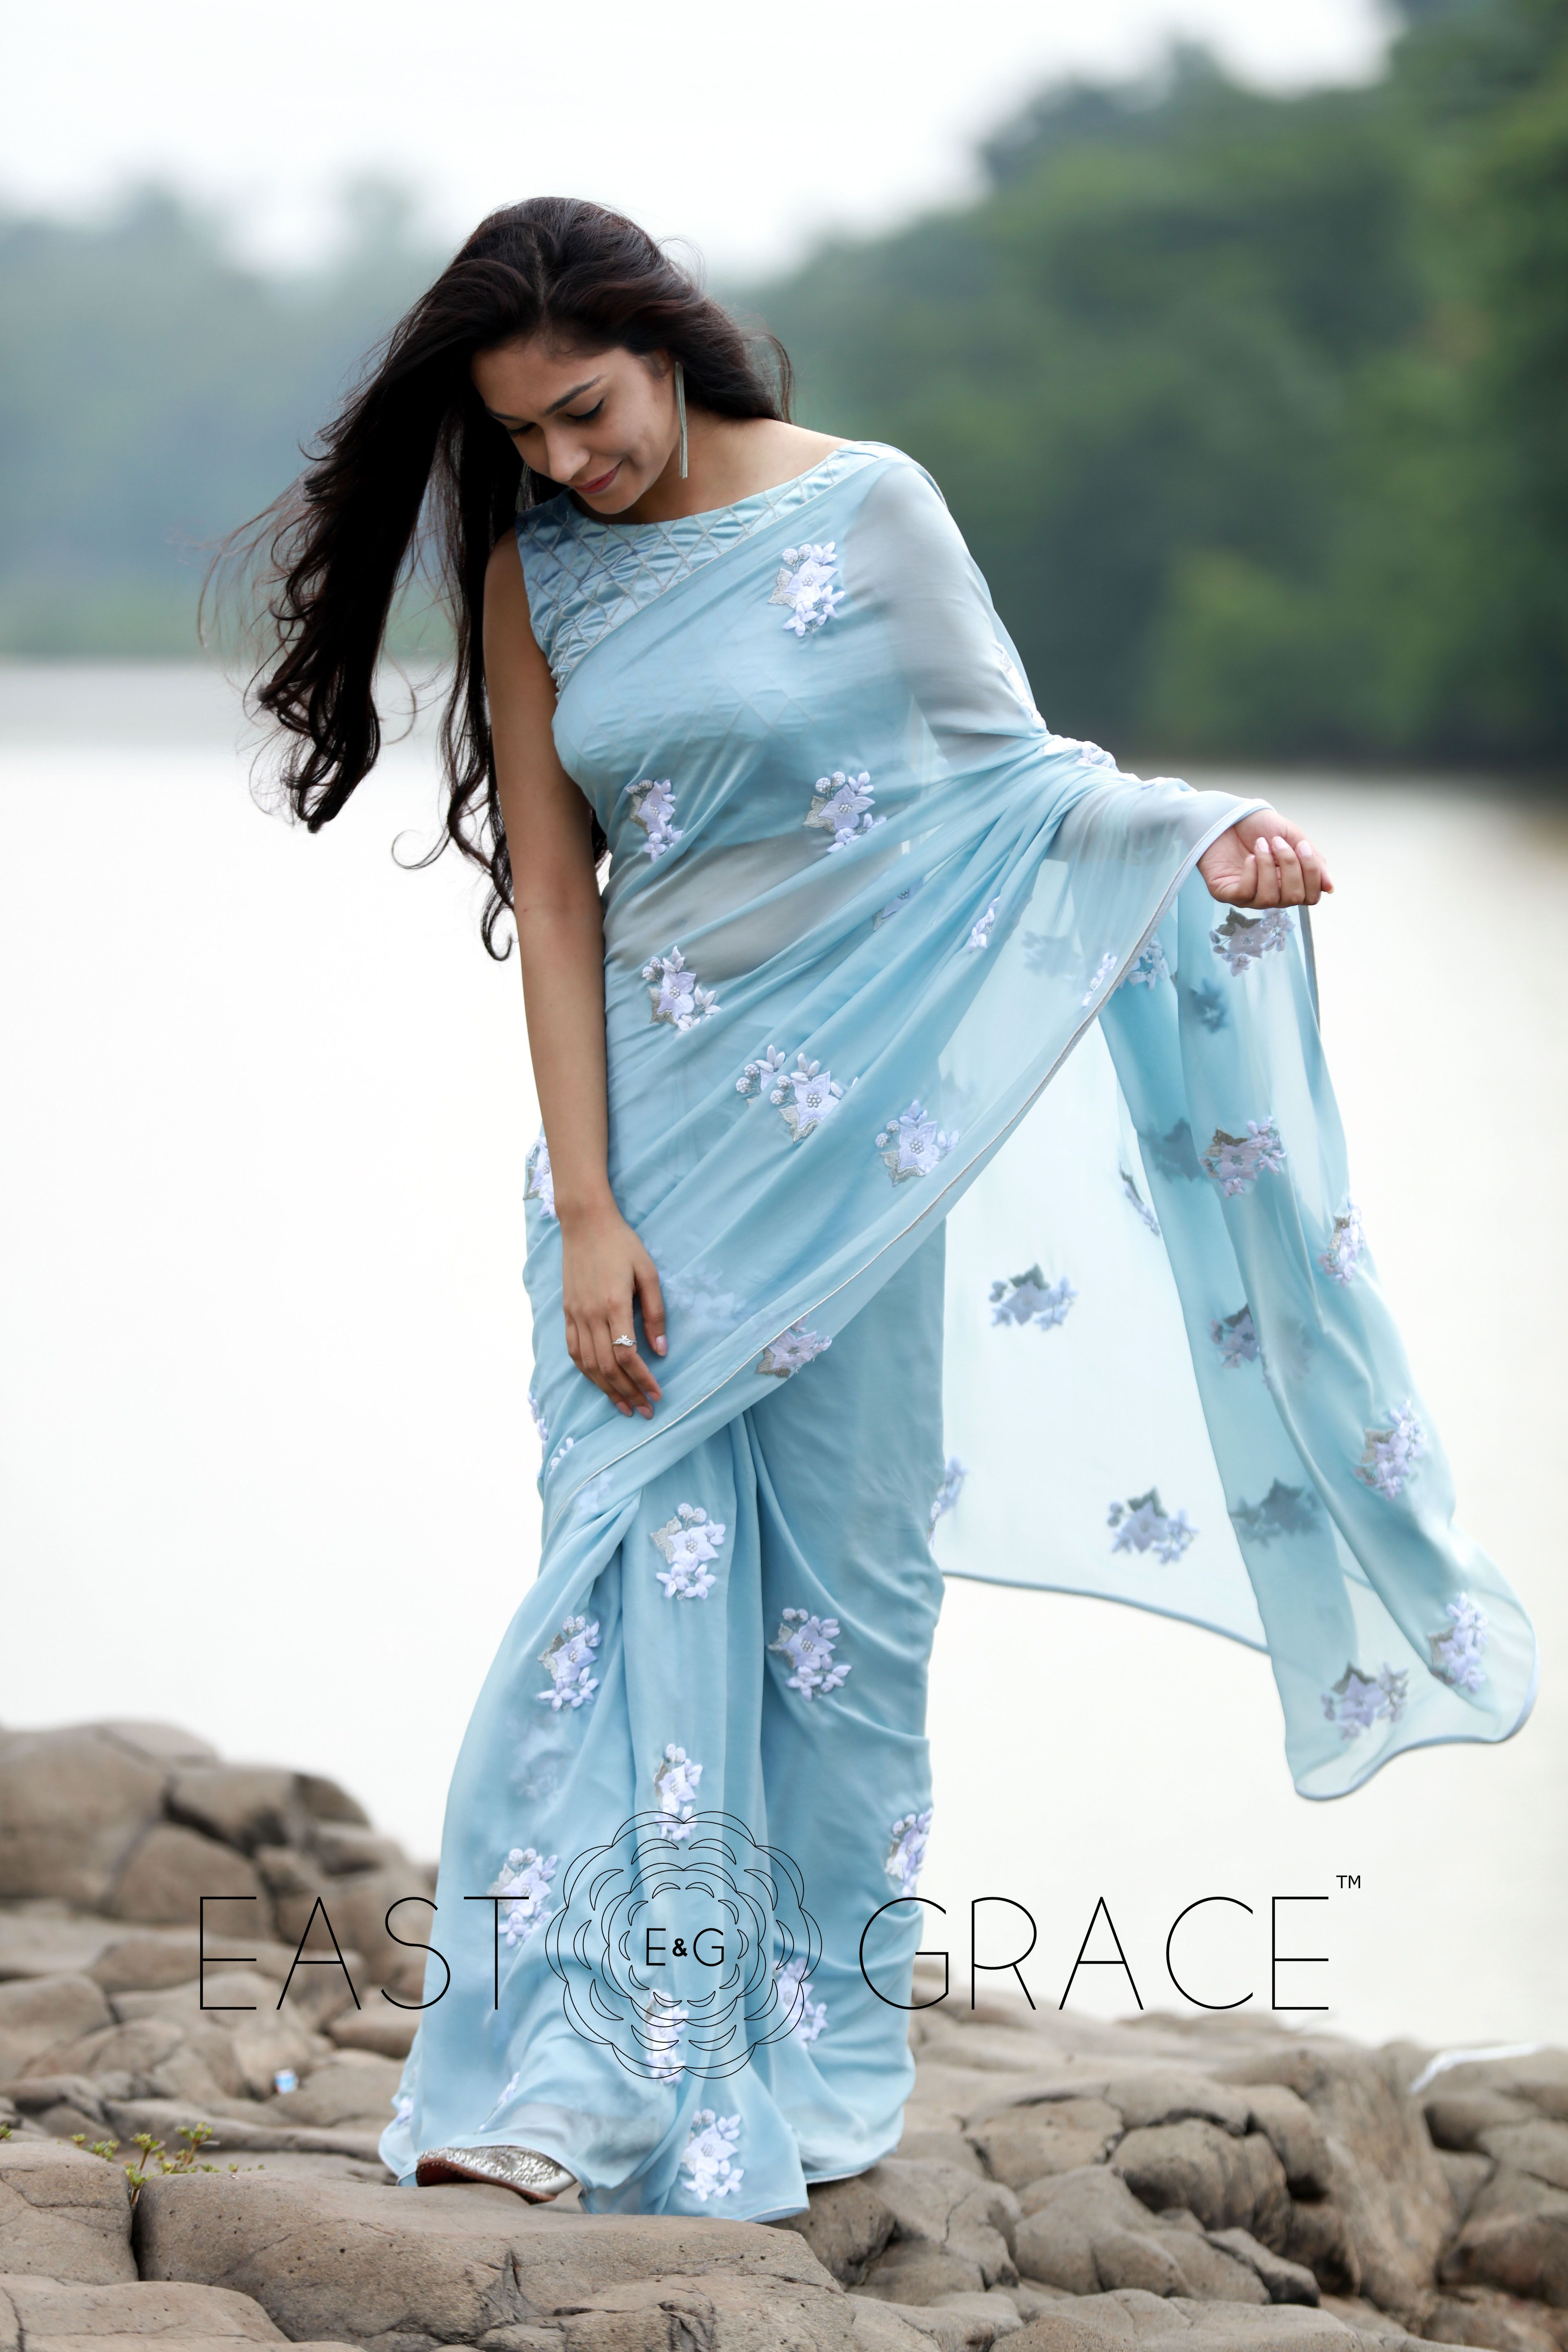 647dfe699fb06a Featuring a soft powder blue pure silk chiffon saree with light white  ribbonwork floral motifs embroidered